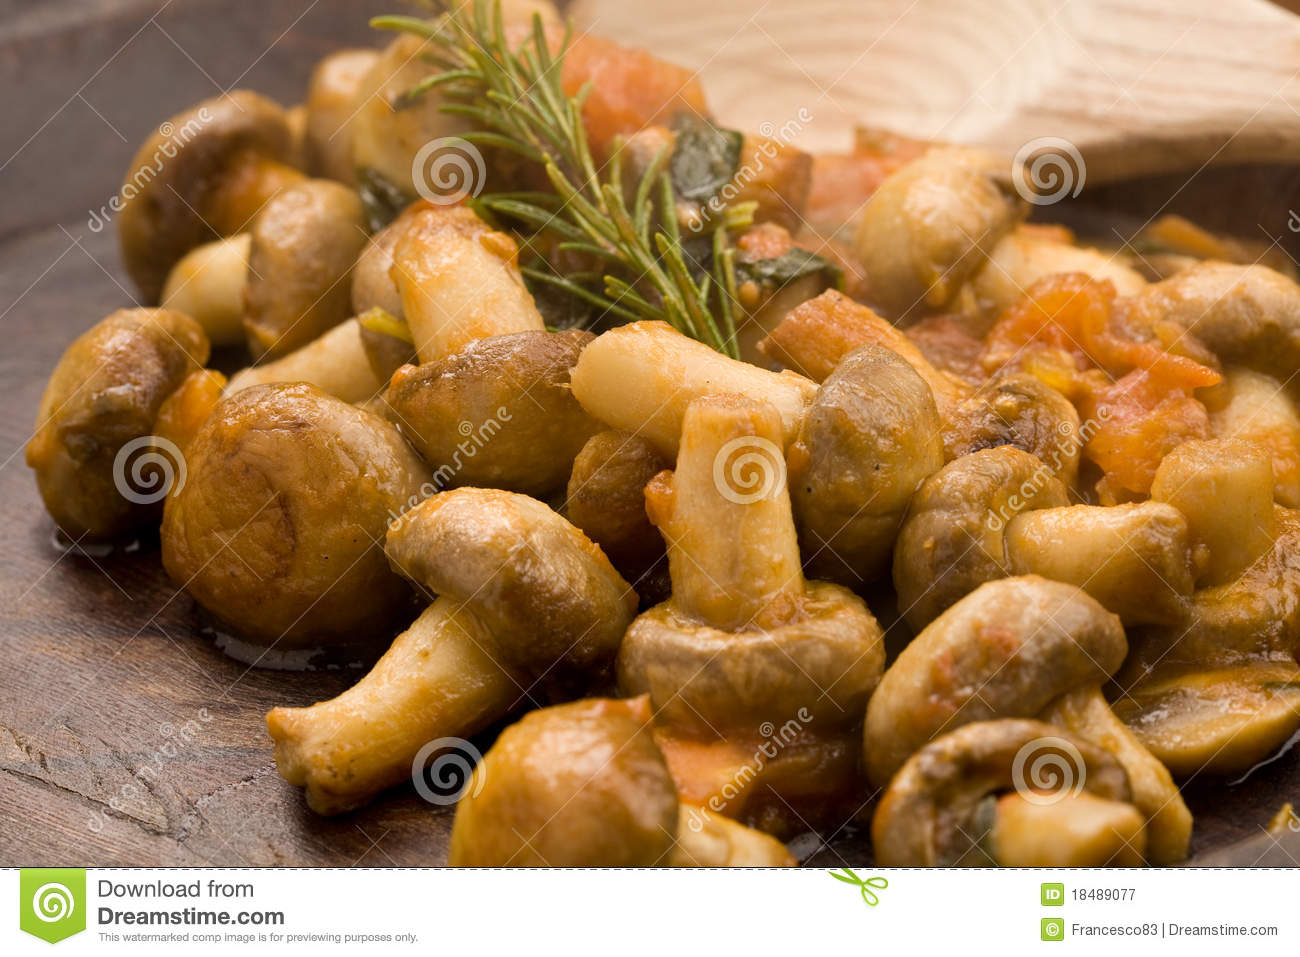 Download Mushrooms with tomatoes stock image. Image of cooked - 18489077